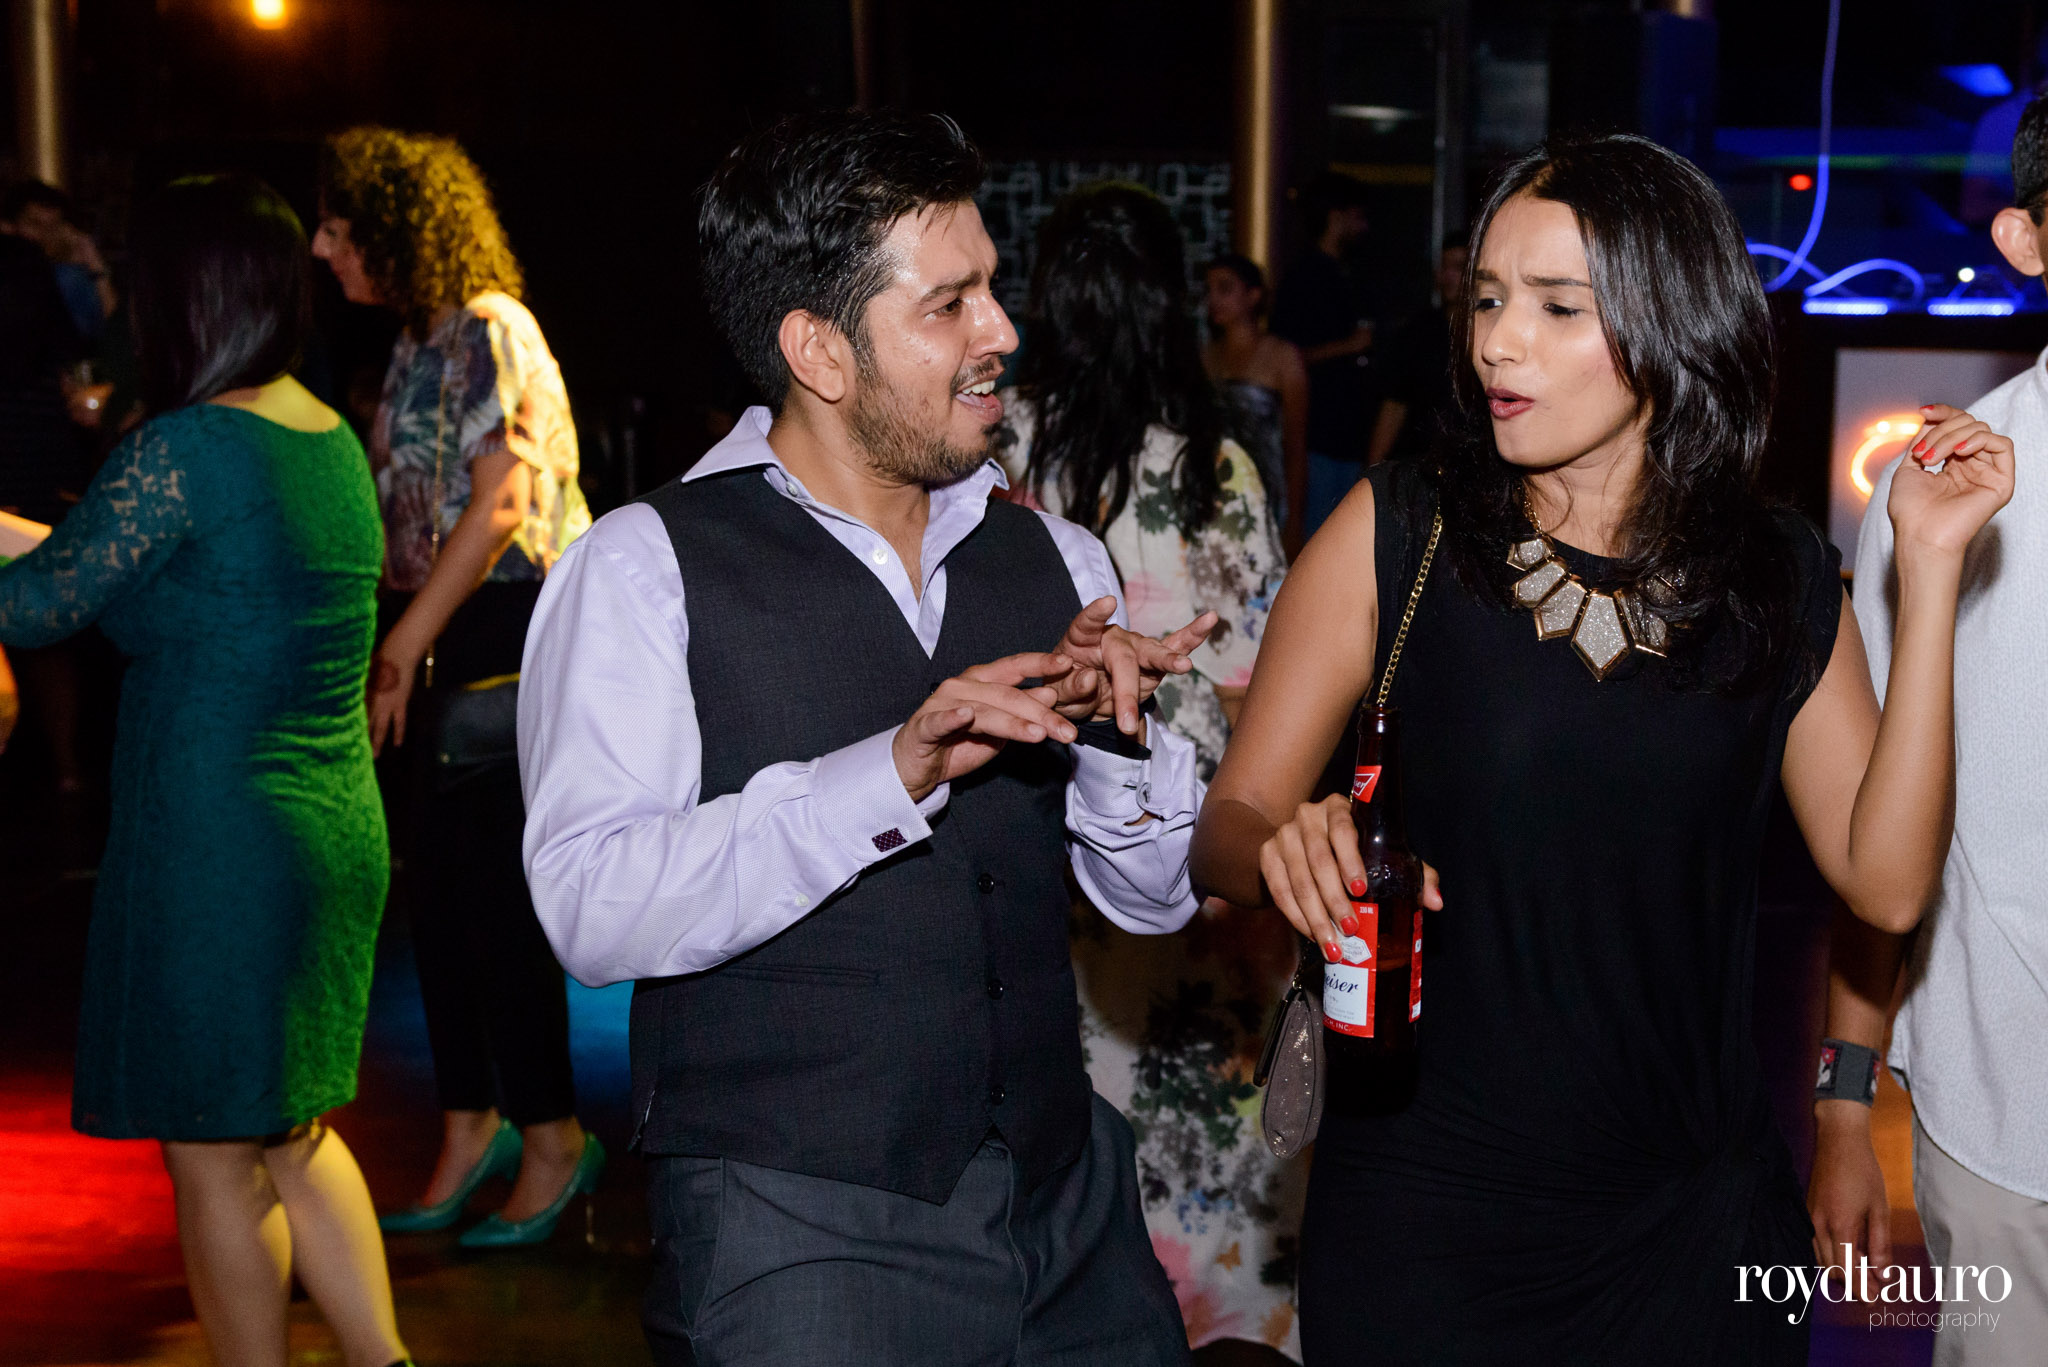 nikhil-madhura-cocktail-party-47.jpg